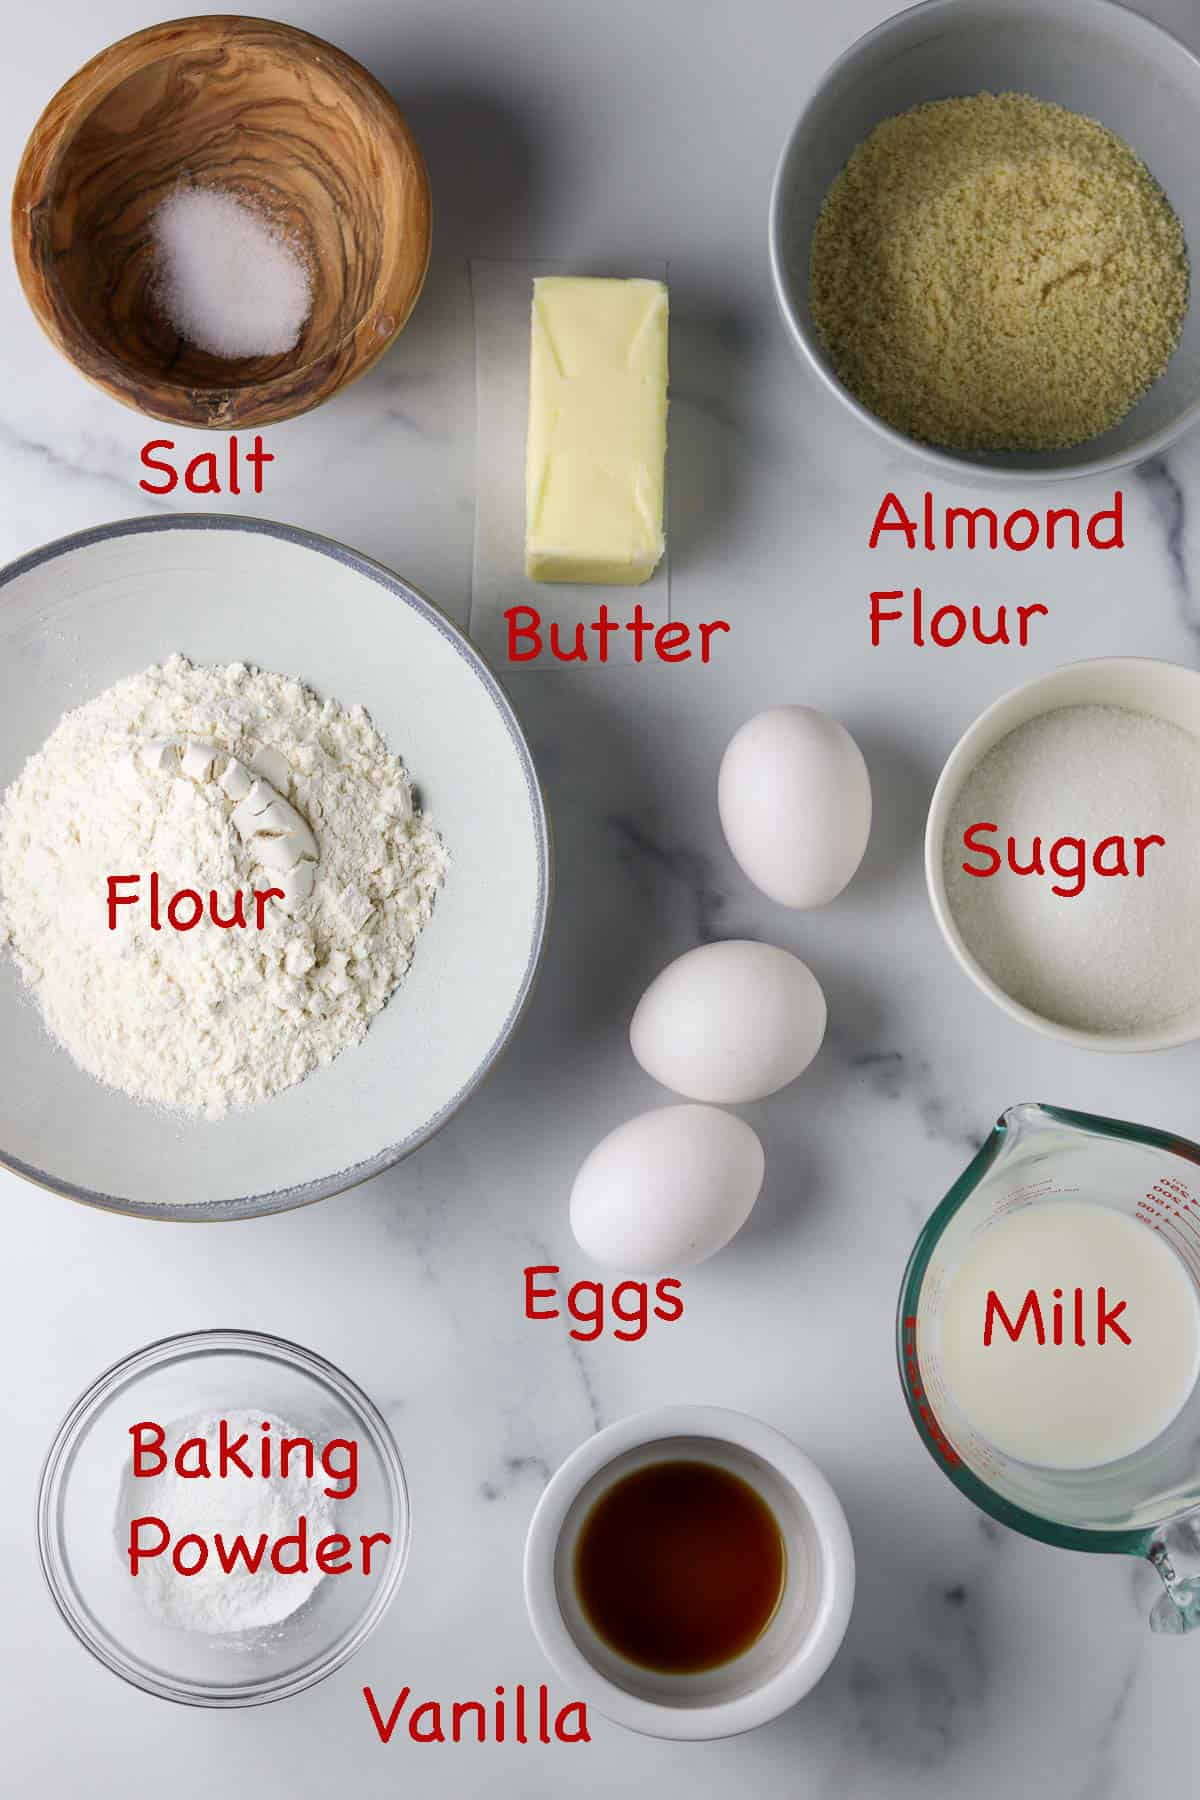 Labeled ingredients for Swedish Tosca Cake